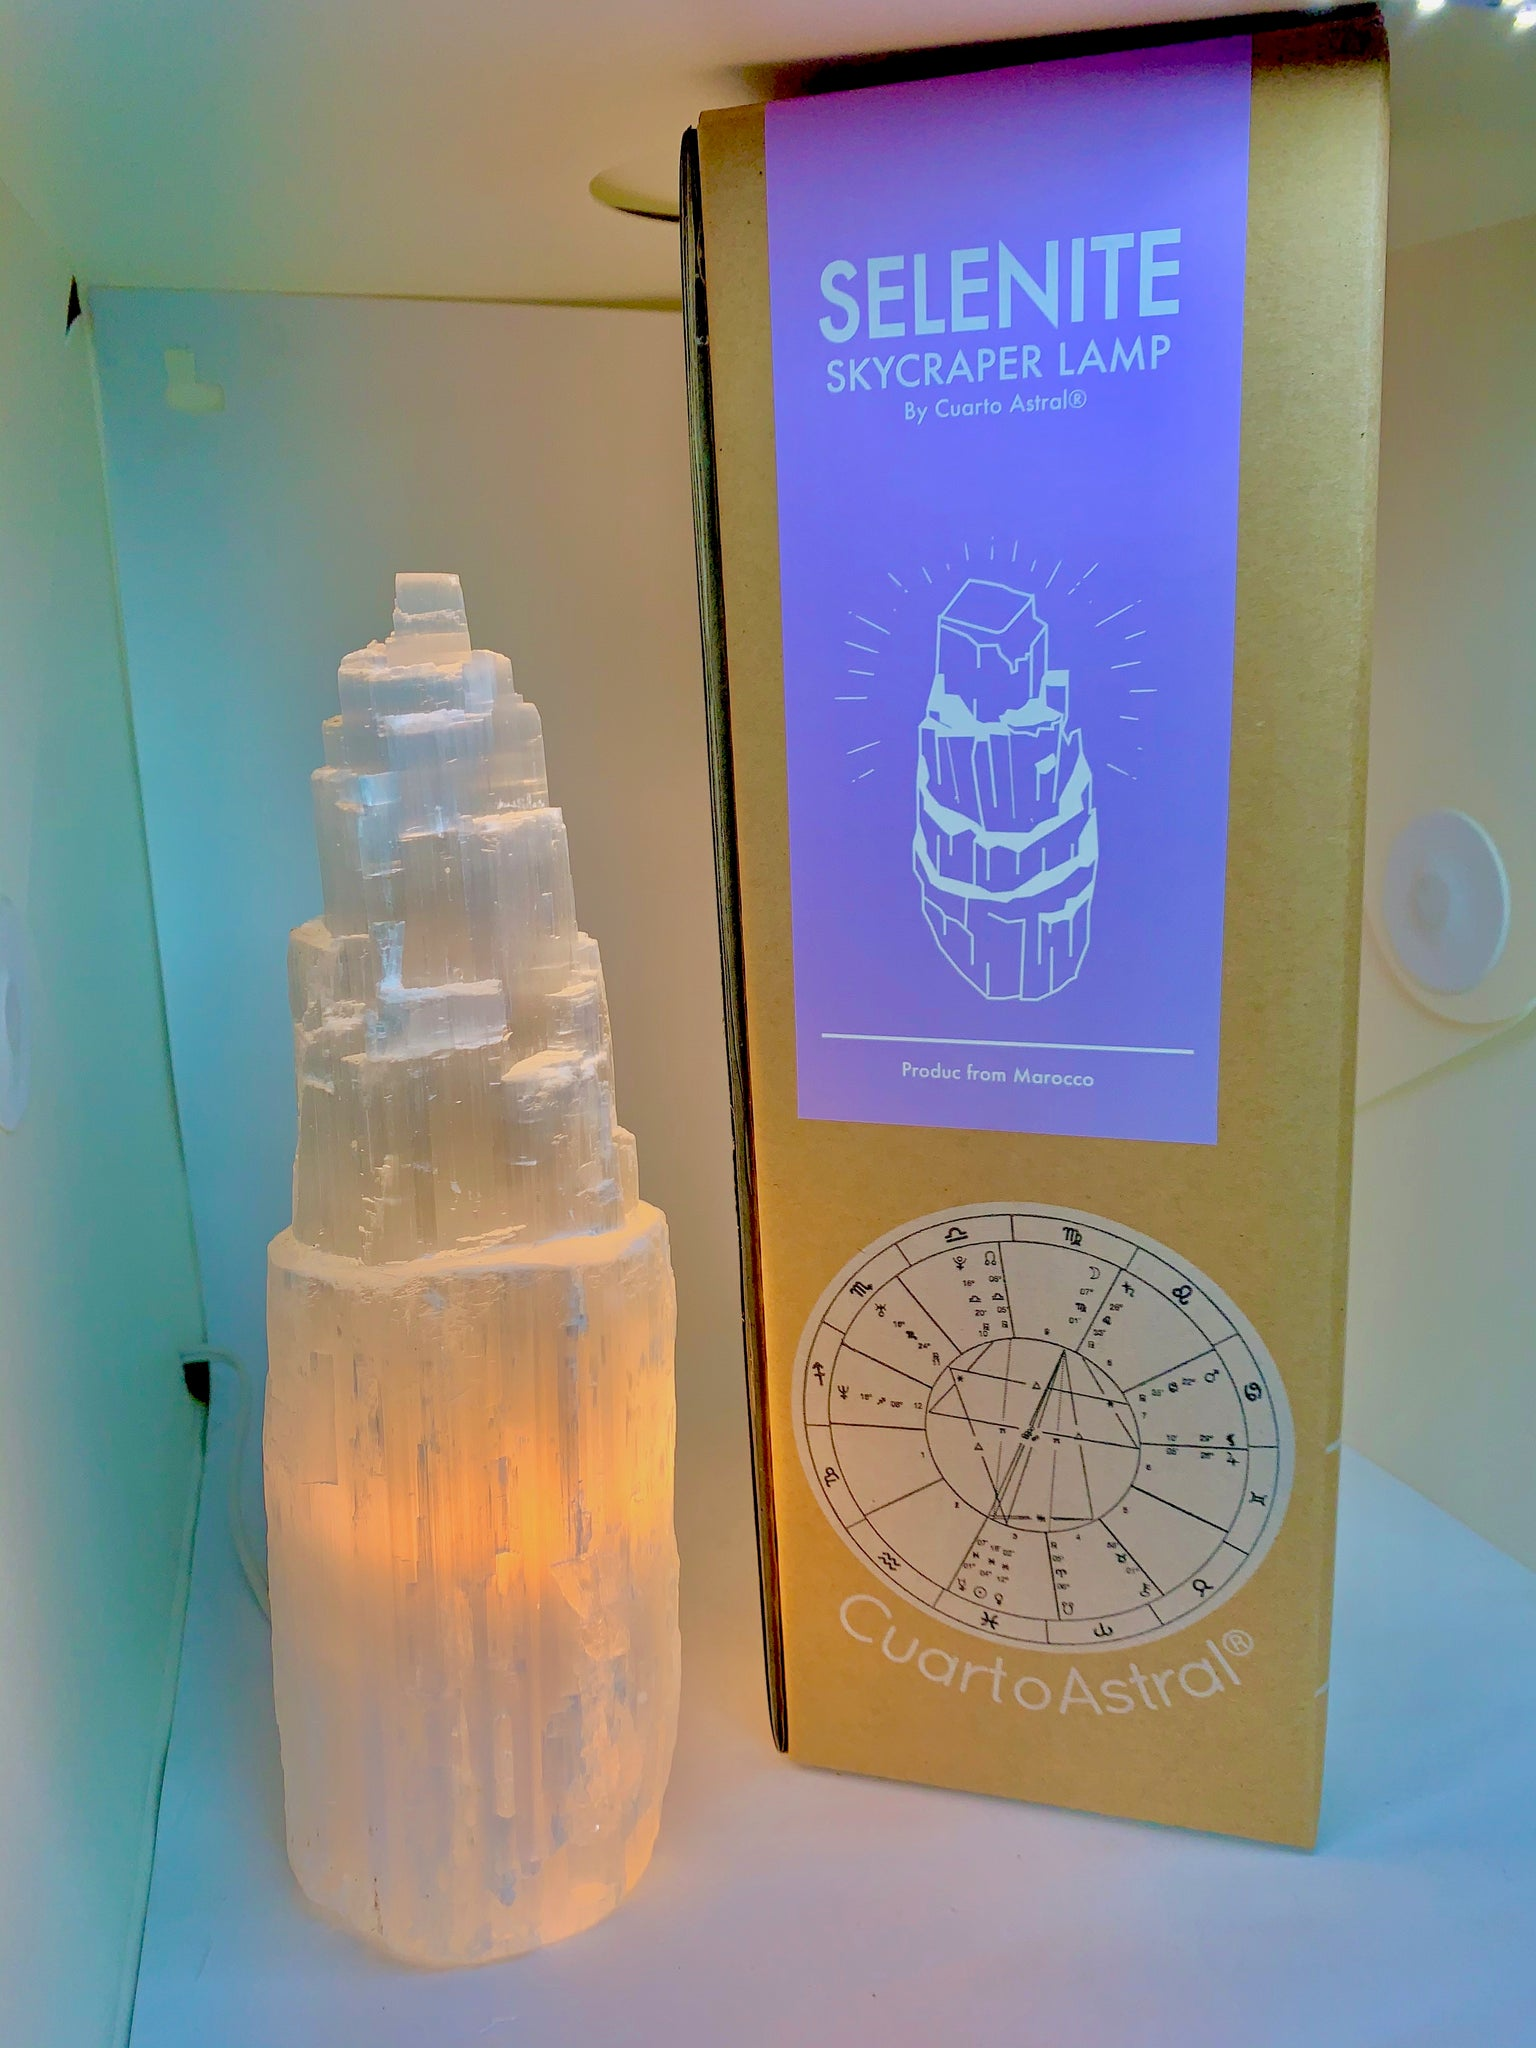 Selenite Skyscraper Lamp